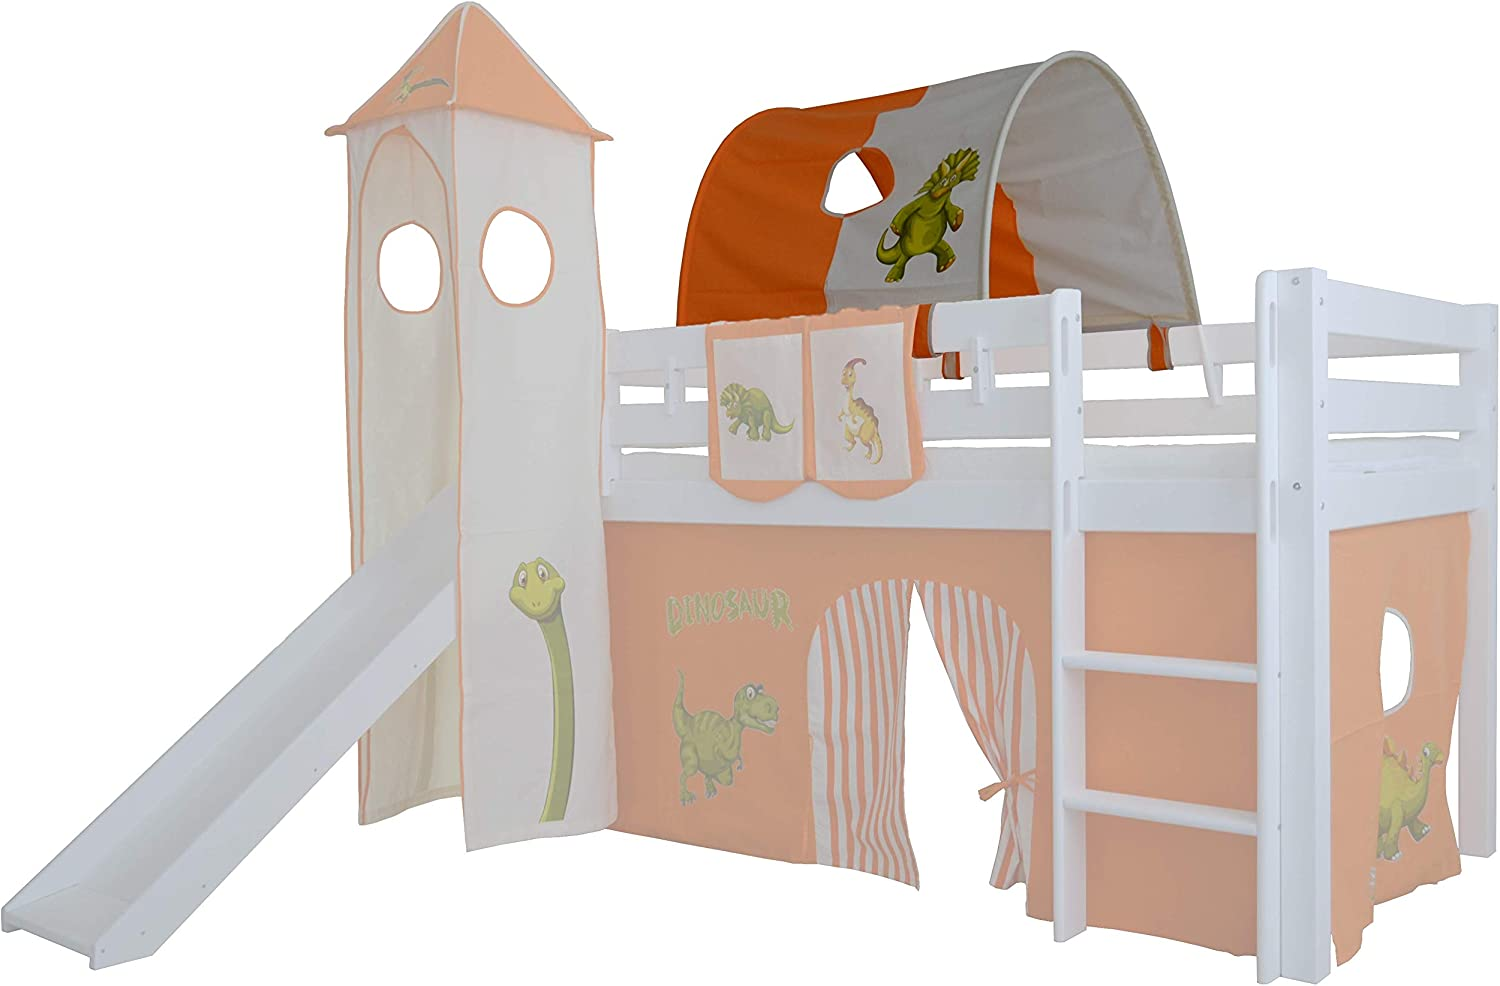 Mobi Furniture Tunnel Dinosaur For Bunk Bed Cave Bunk Bed Play Bed Amazon De Kuche Haushalt